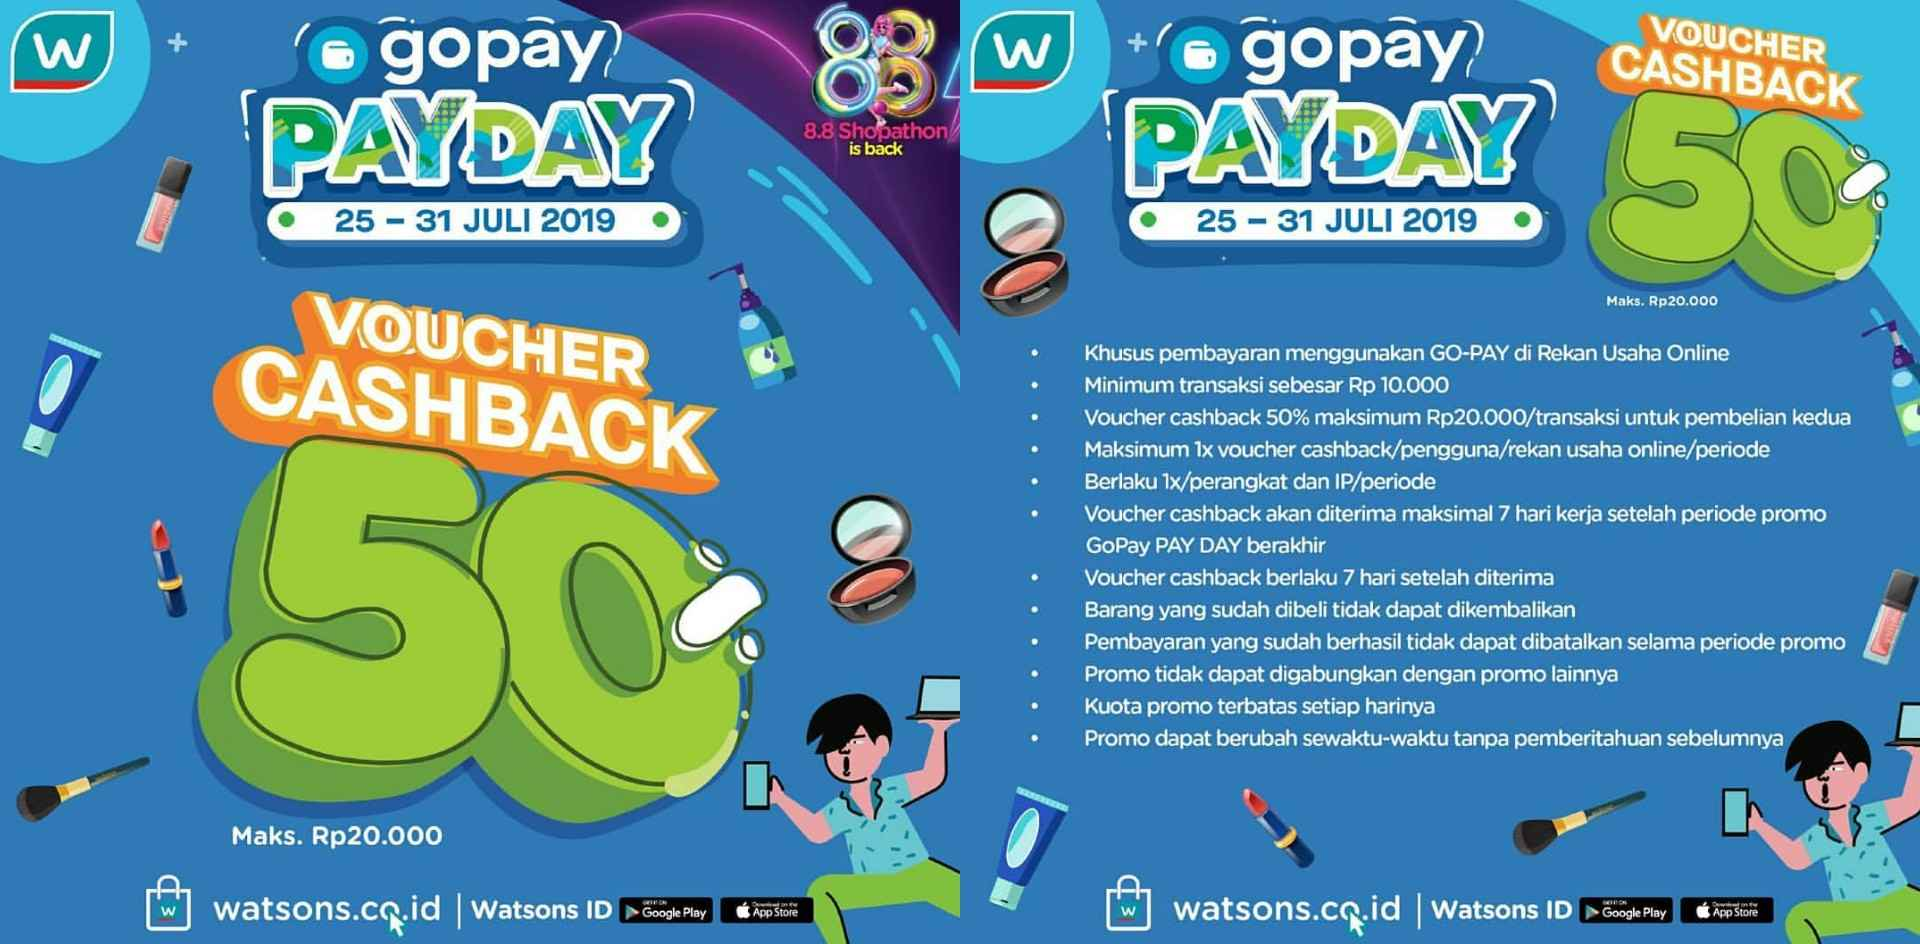 Watsons Promo GOPAY PAYDAY, Cashback up to 60%!